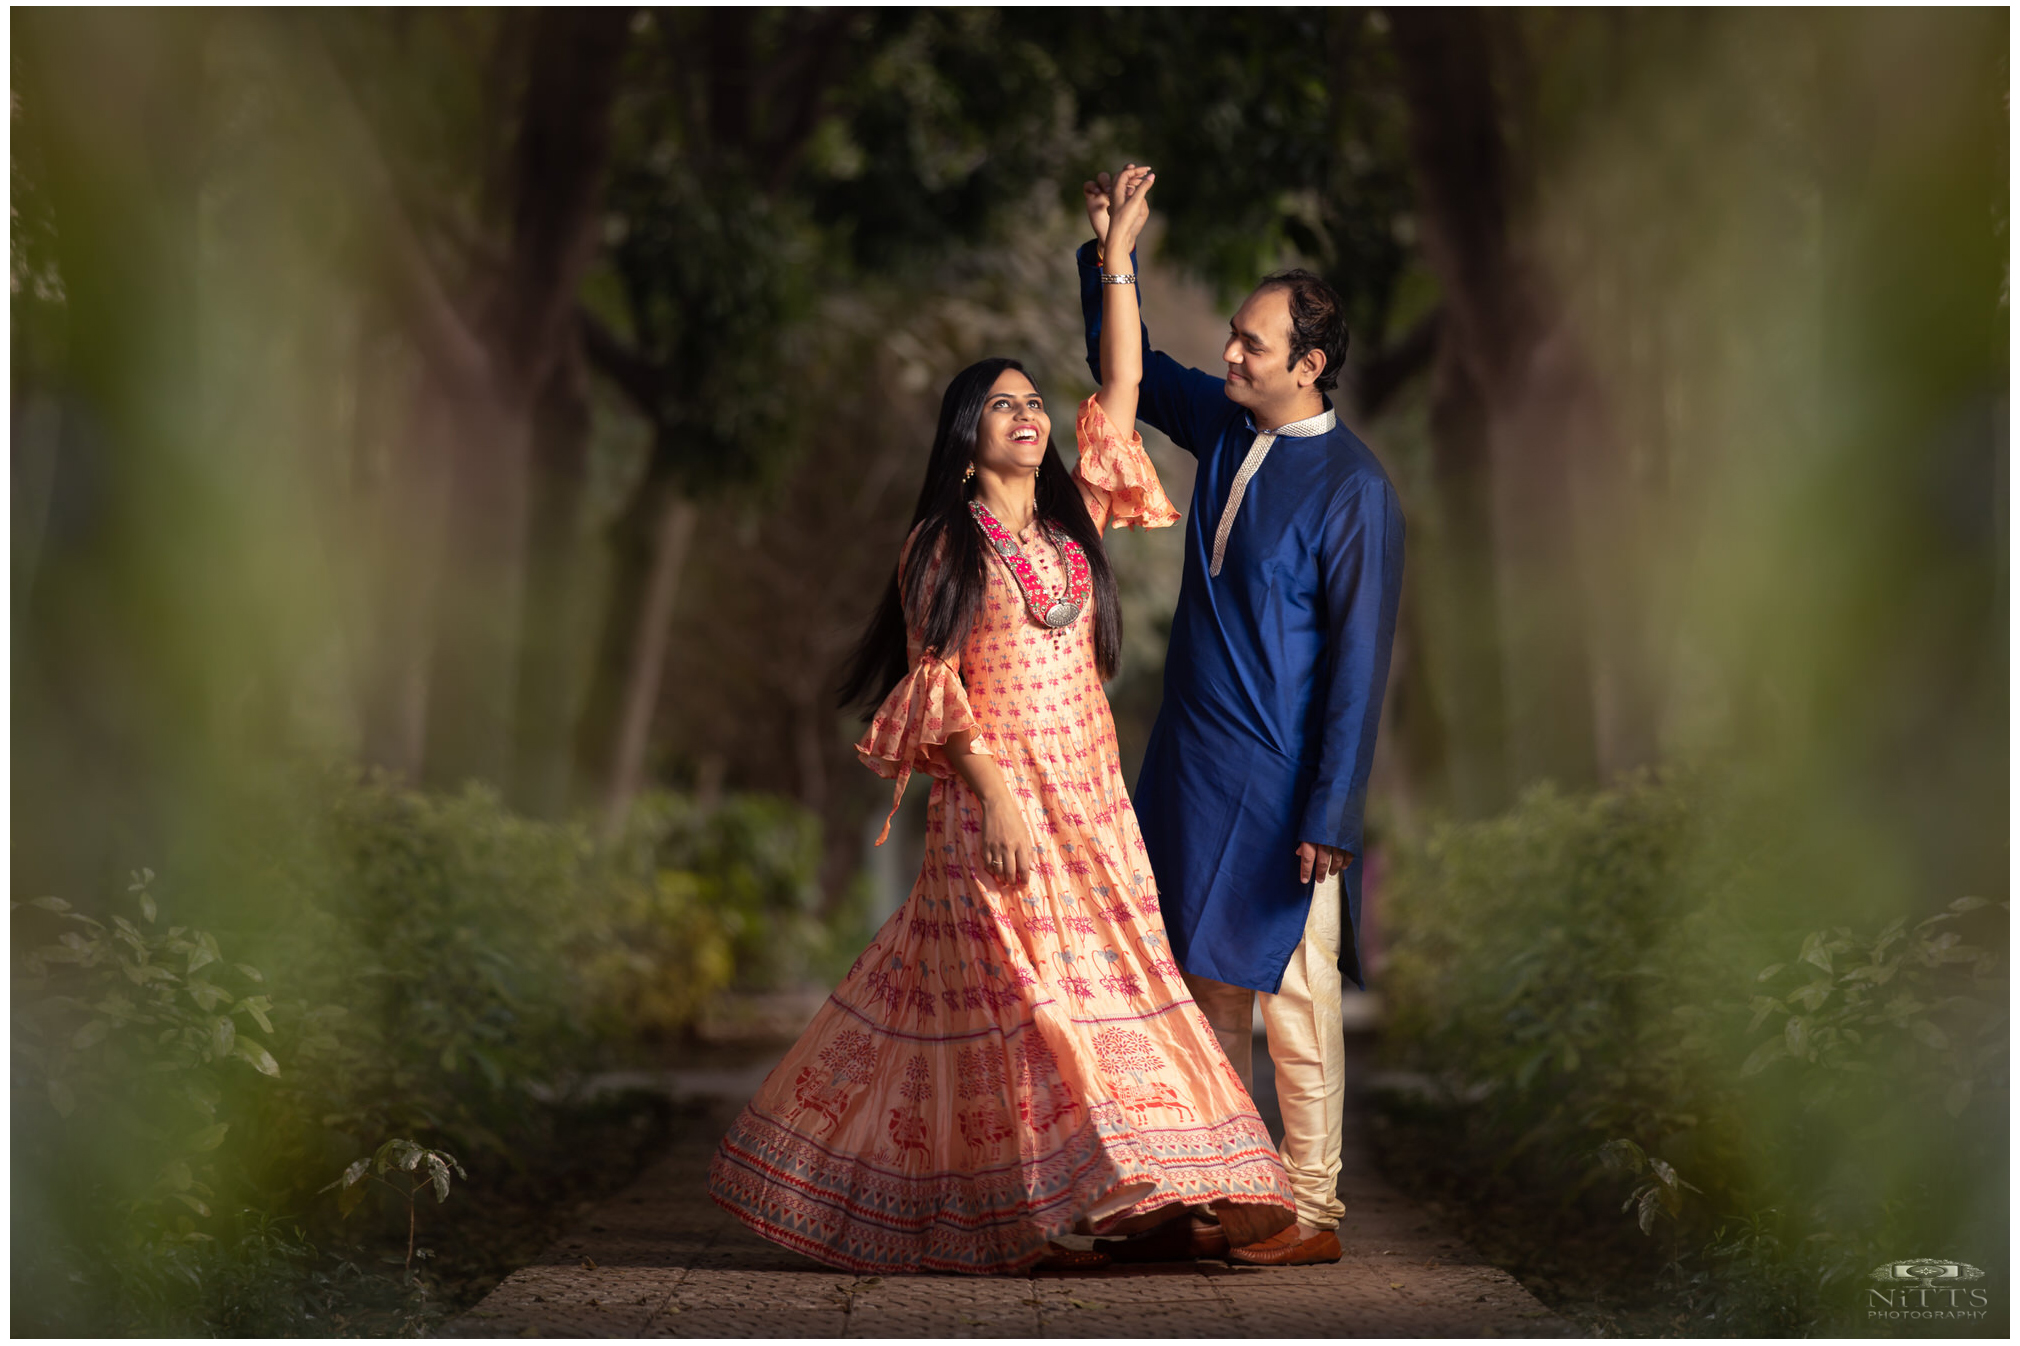 Twirling bride_Monsoon_forest_prewedding_couple_natural_light -9.jpg